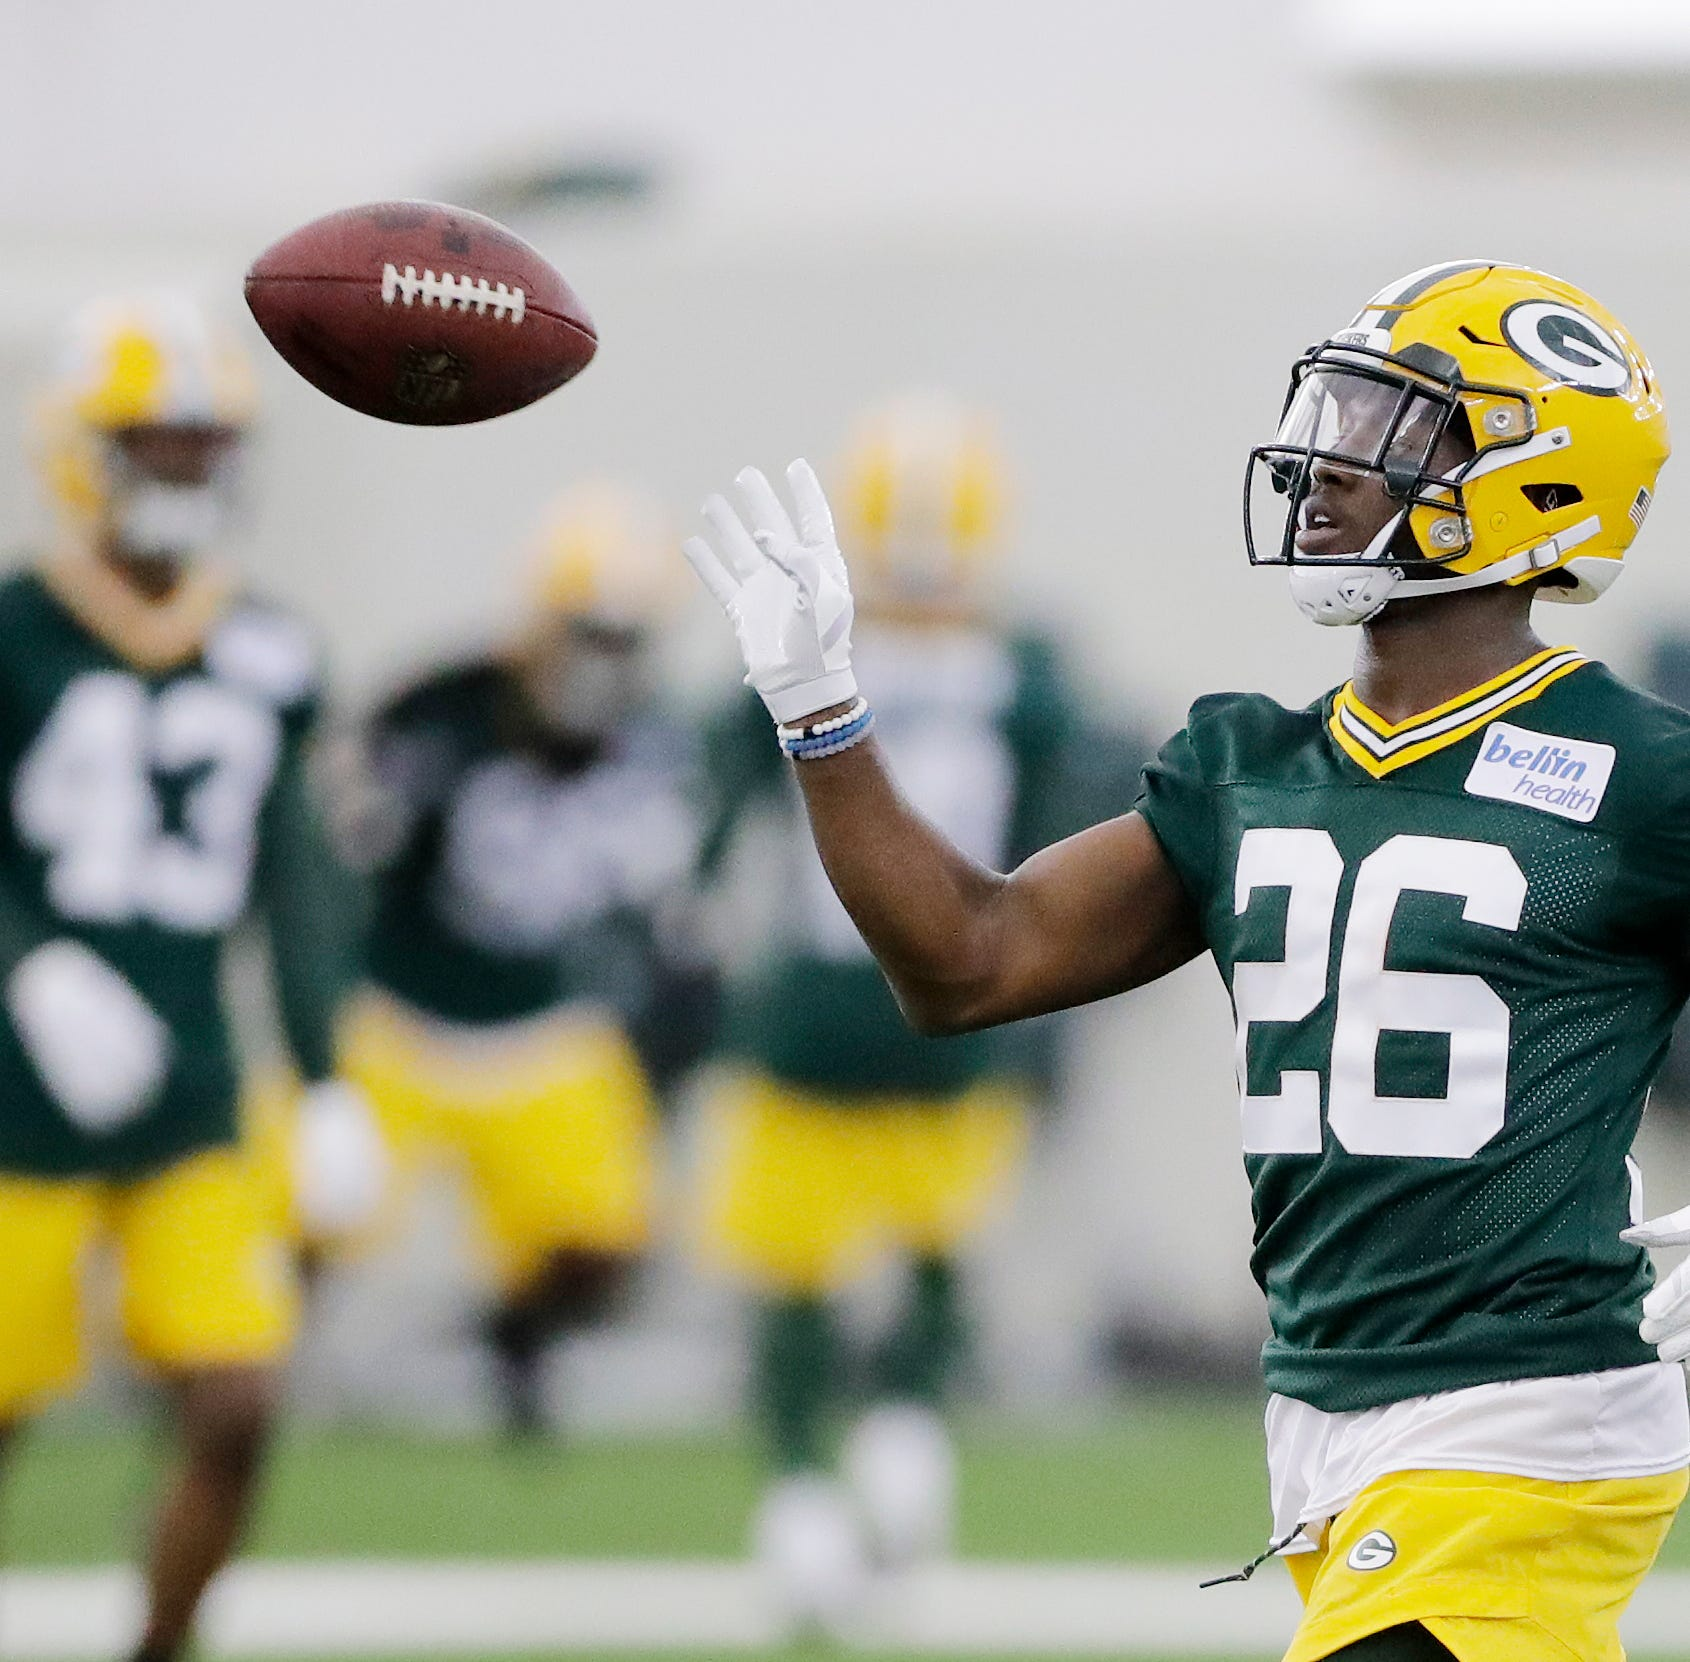 Packers notes: Surge in speed makes Darnell Savage a 'game changer'